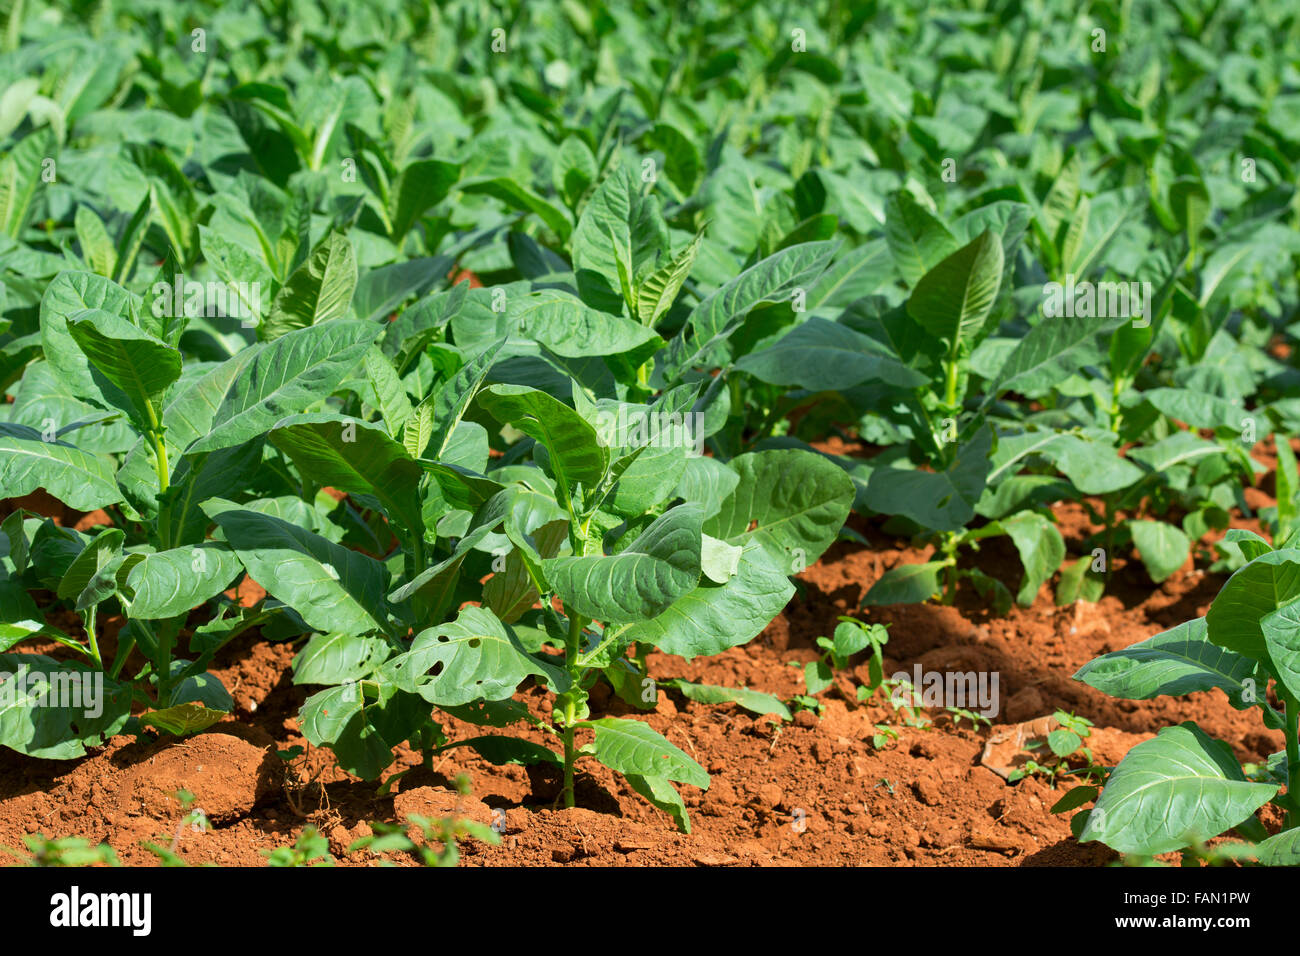 Tobacco Leaves Growing - Stock Image